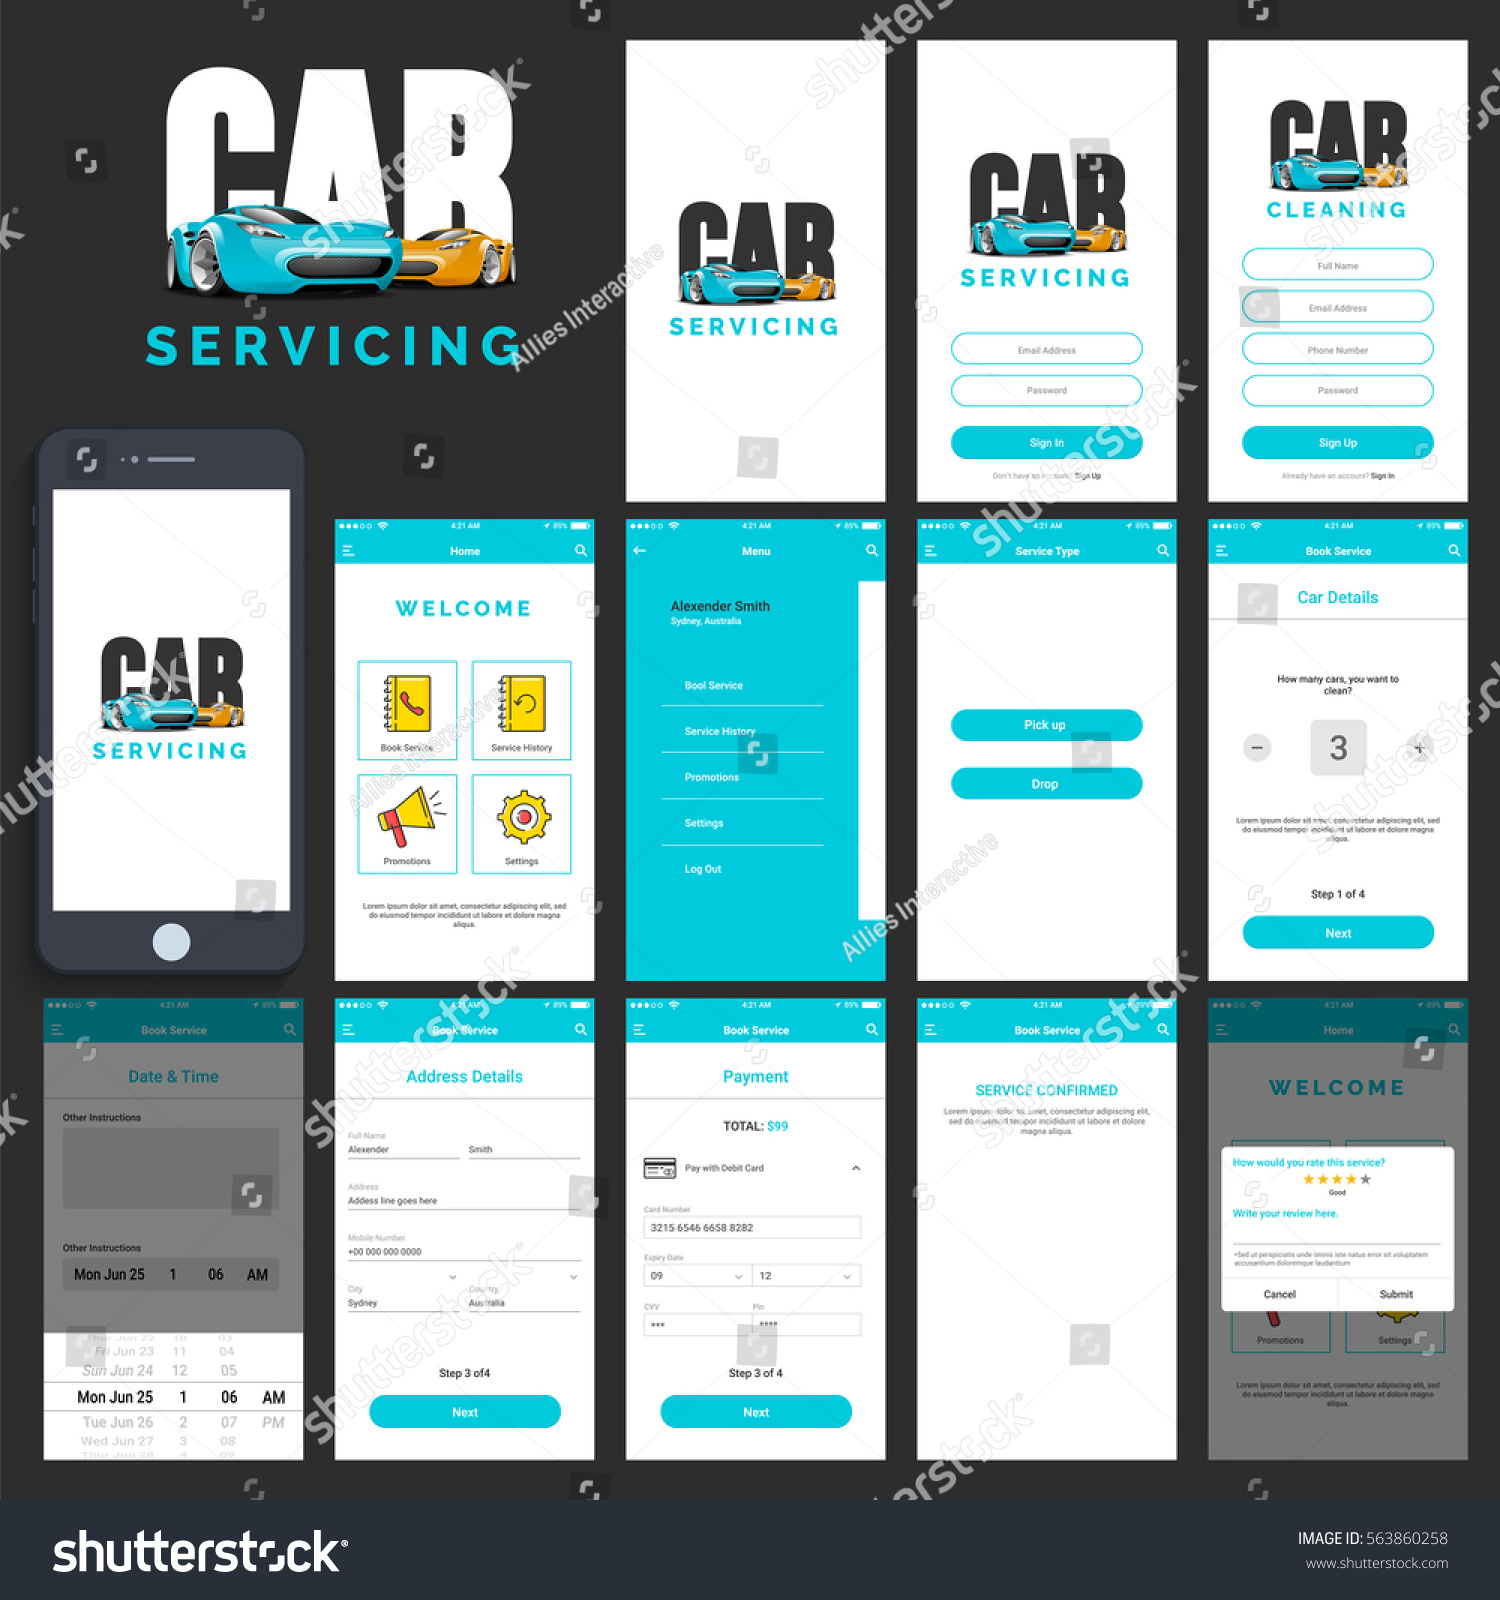 Home App Design: Car Servicing Mobile App Ui Ux Stock Vector 563860258